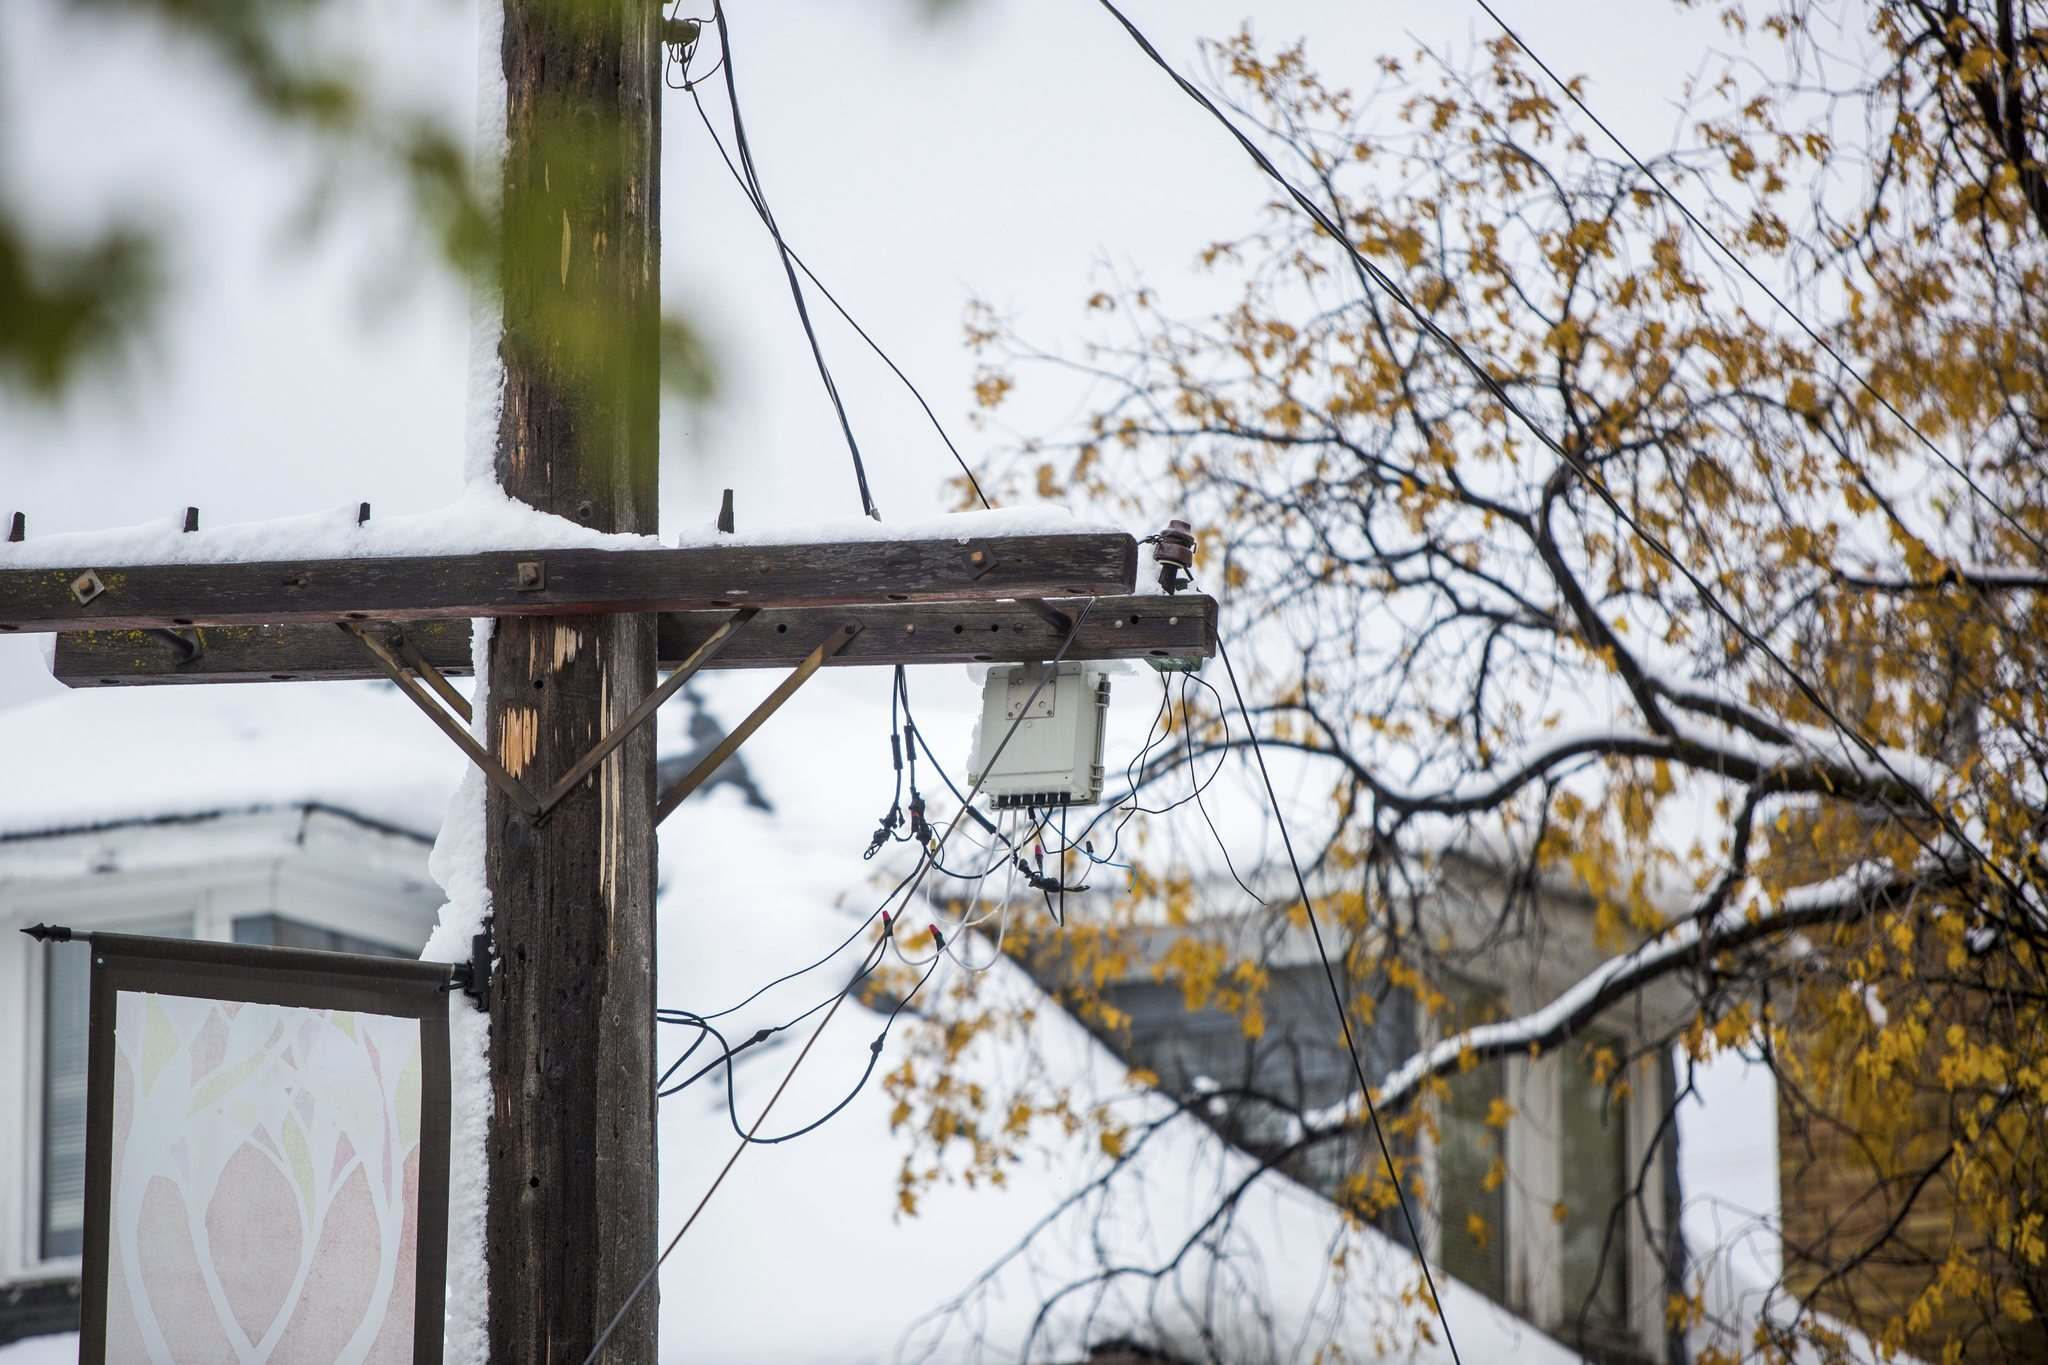 MIKAELA MACKENZIE / WINNIPEG FREE PRESS</p><p>A downed power line is taped off on Westminster Avenue at Canora Street on Saturday.</p>